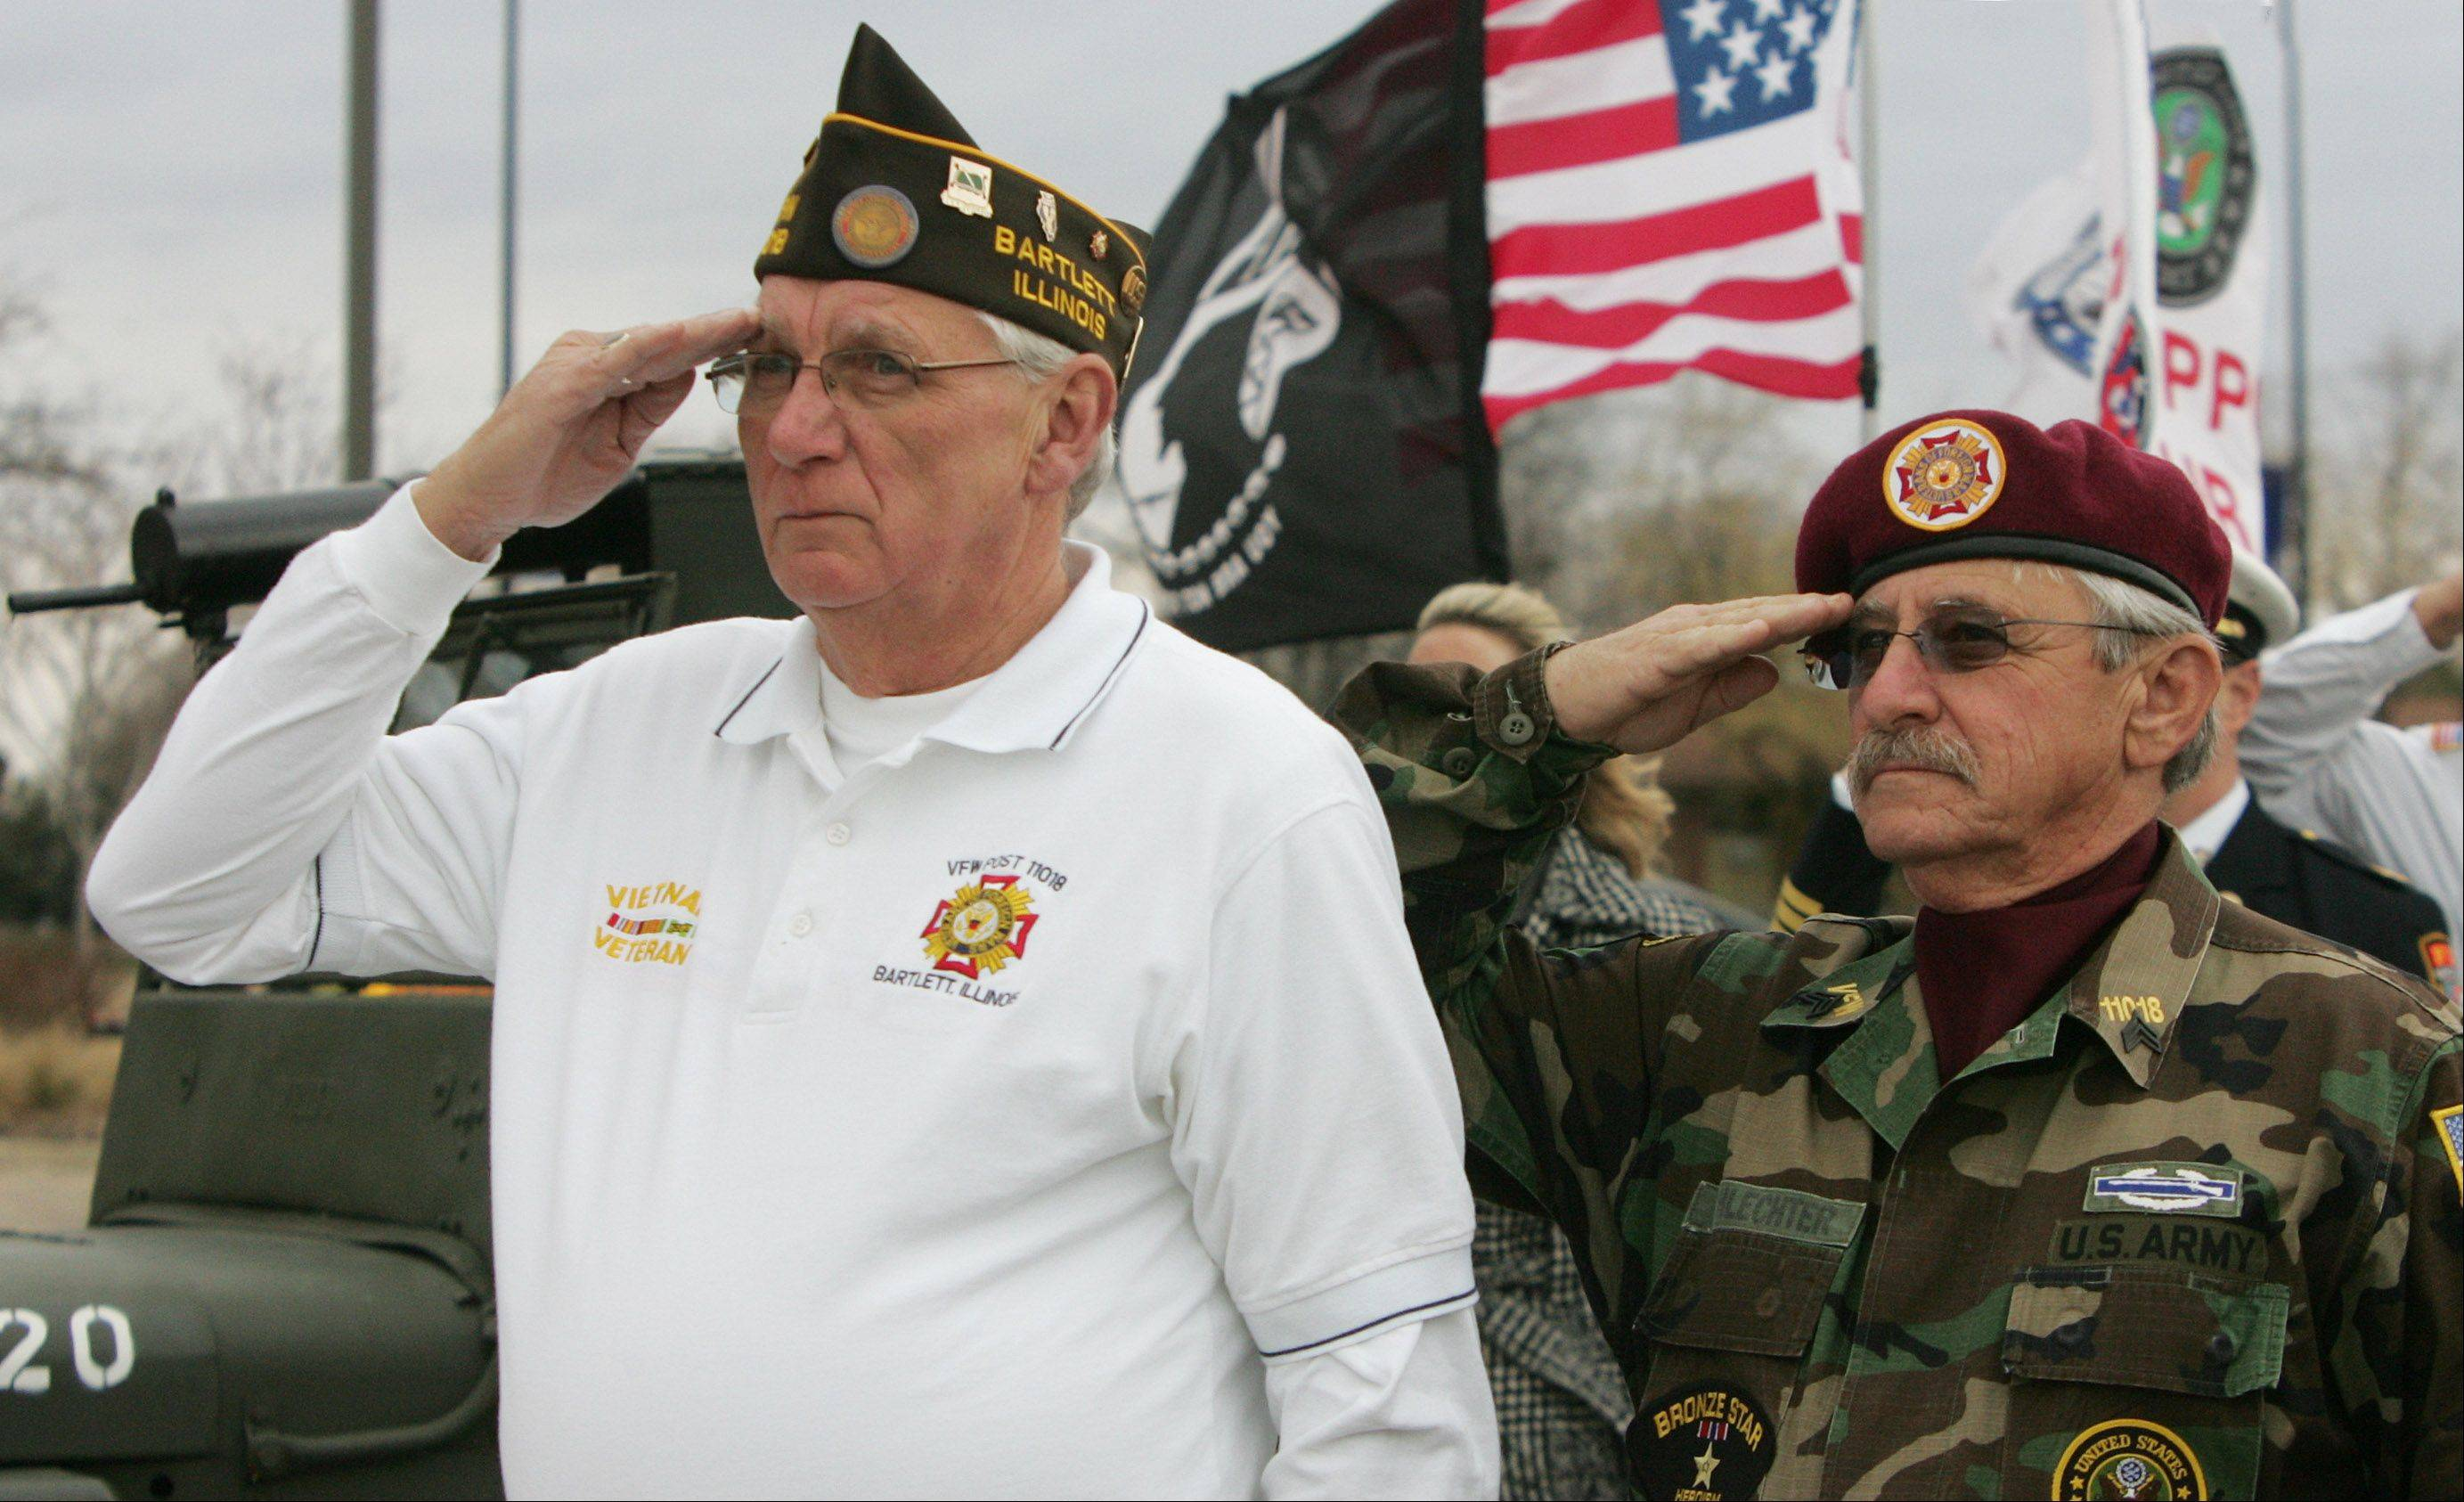 Veterans Joe Tremmel, left, and Glen Schlechter salute as the national anthem is sung during the Veterans Day ceremony Sunday at the Hanover Park Village Hall featuring the unveiling of Veterans Memorial Plaza. The dedication was hosted by VFW Post 11018 and Post 5151 and the Village of Hanover Park.